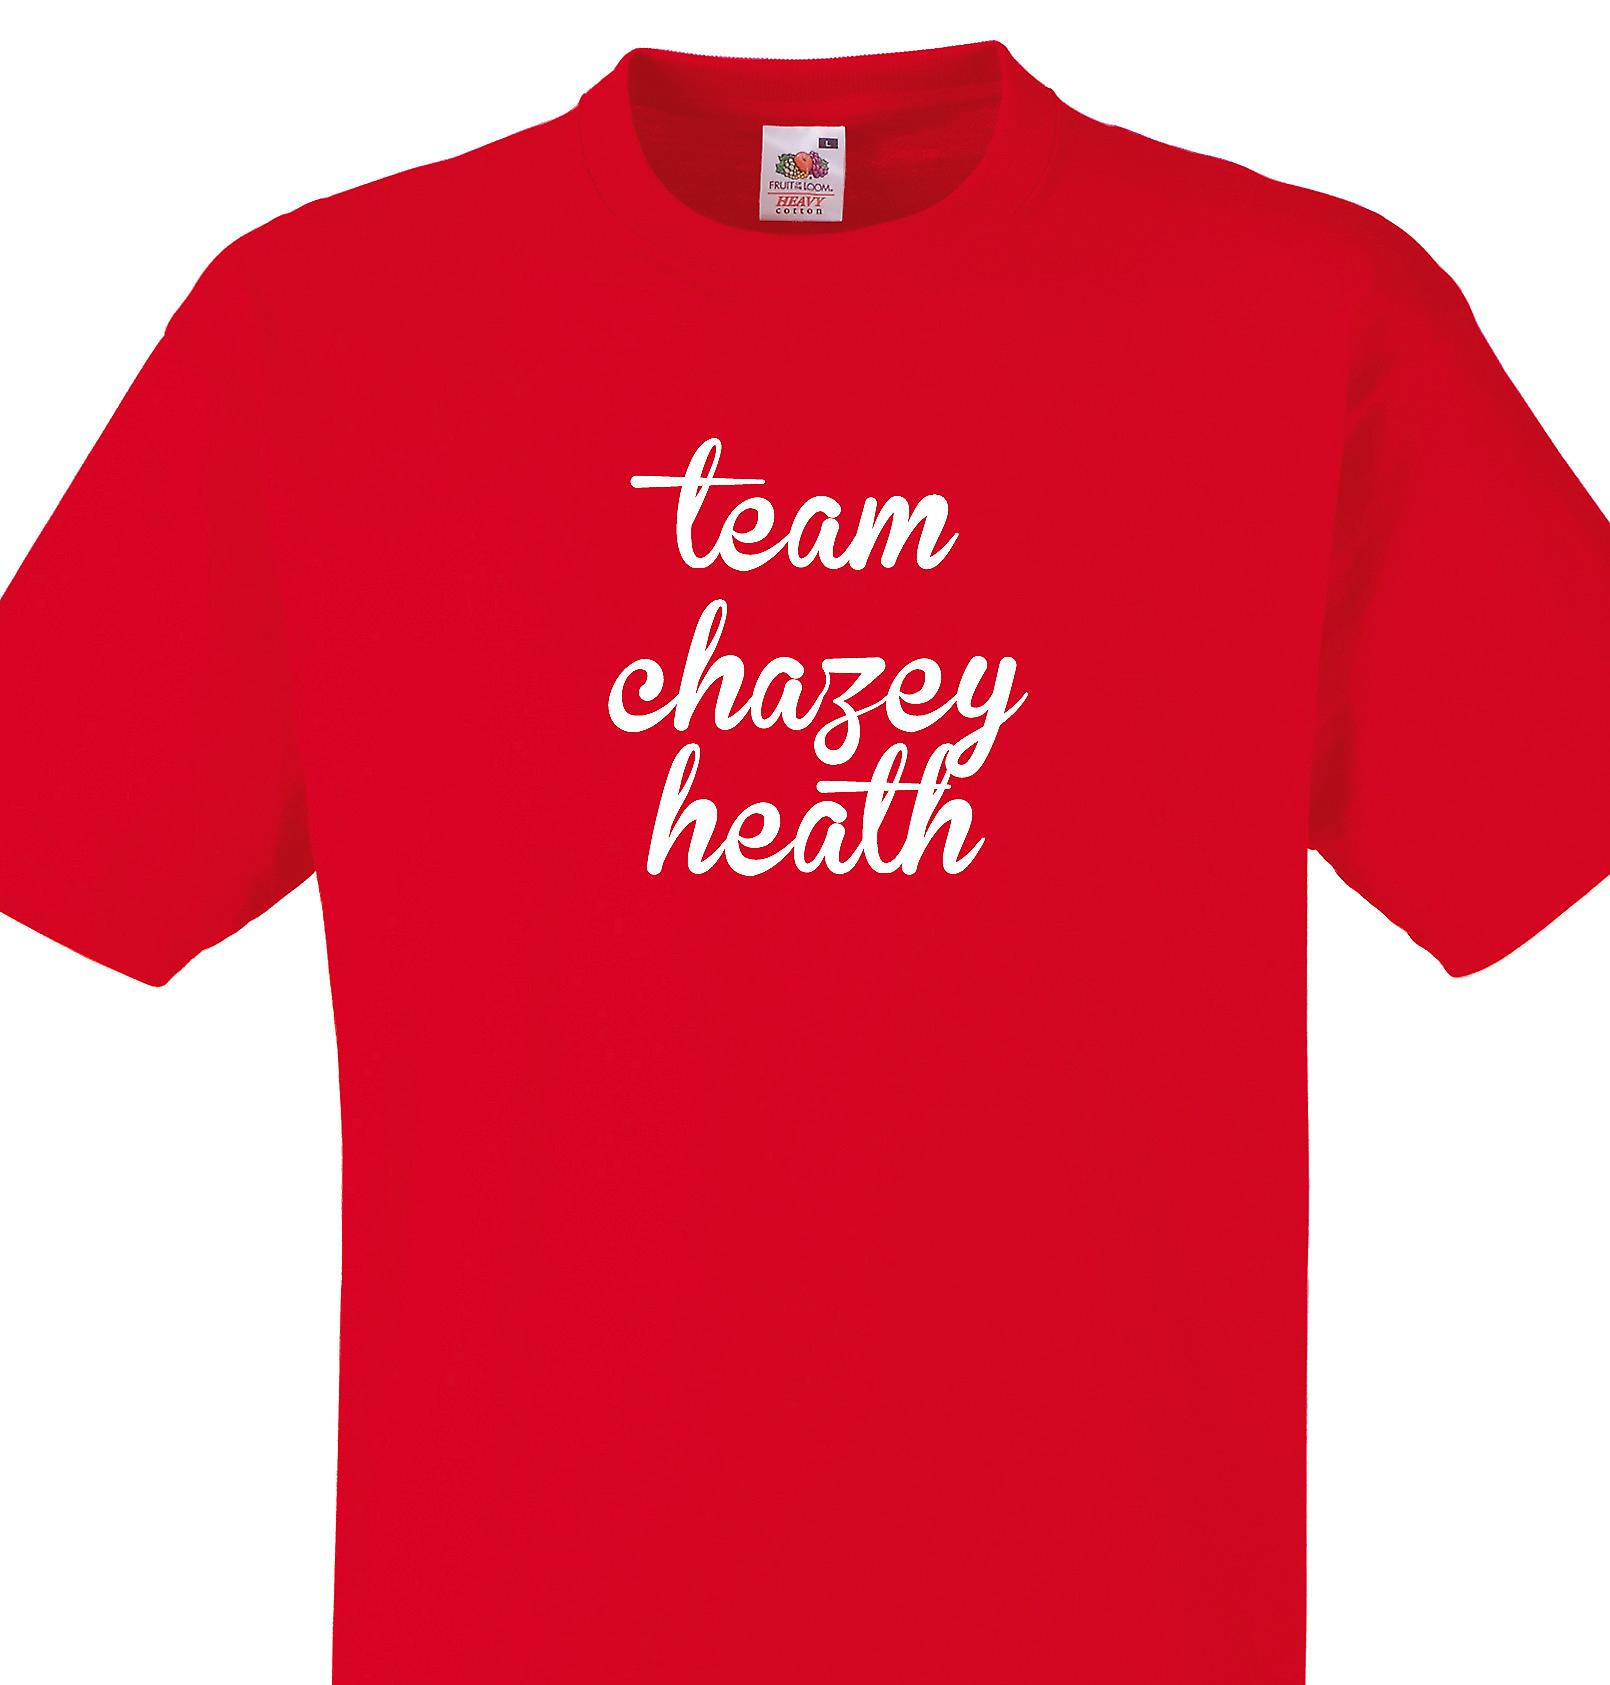 Team Chazey heath Red T shirt